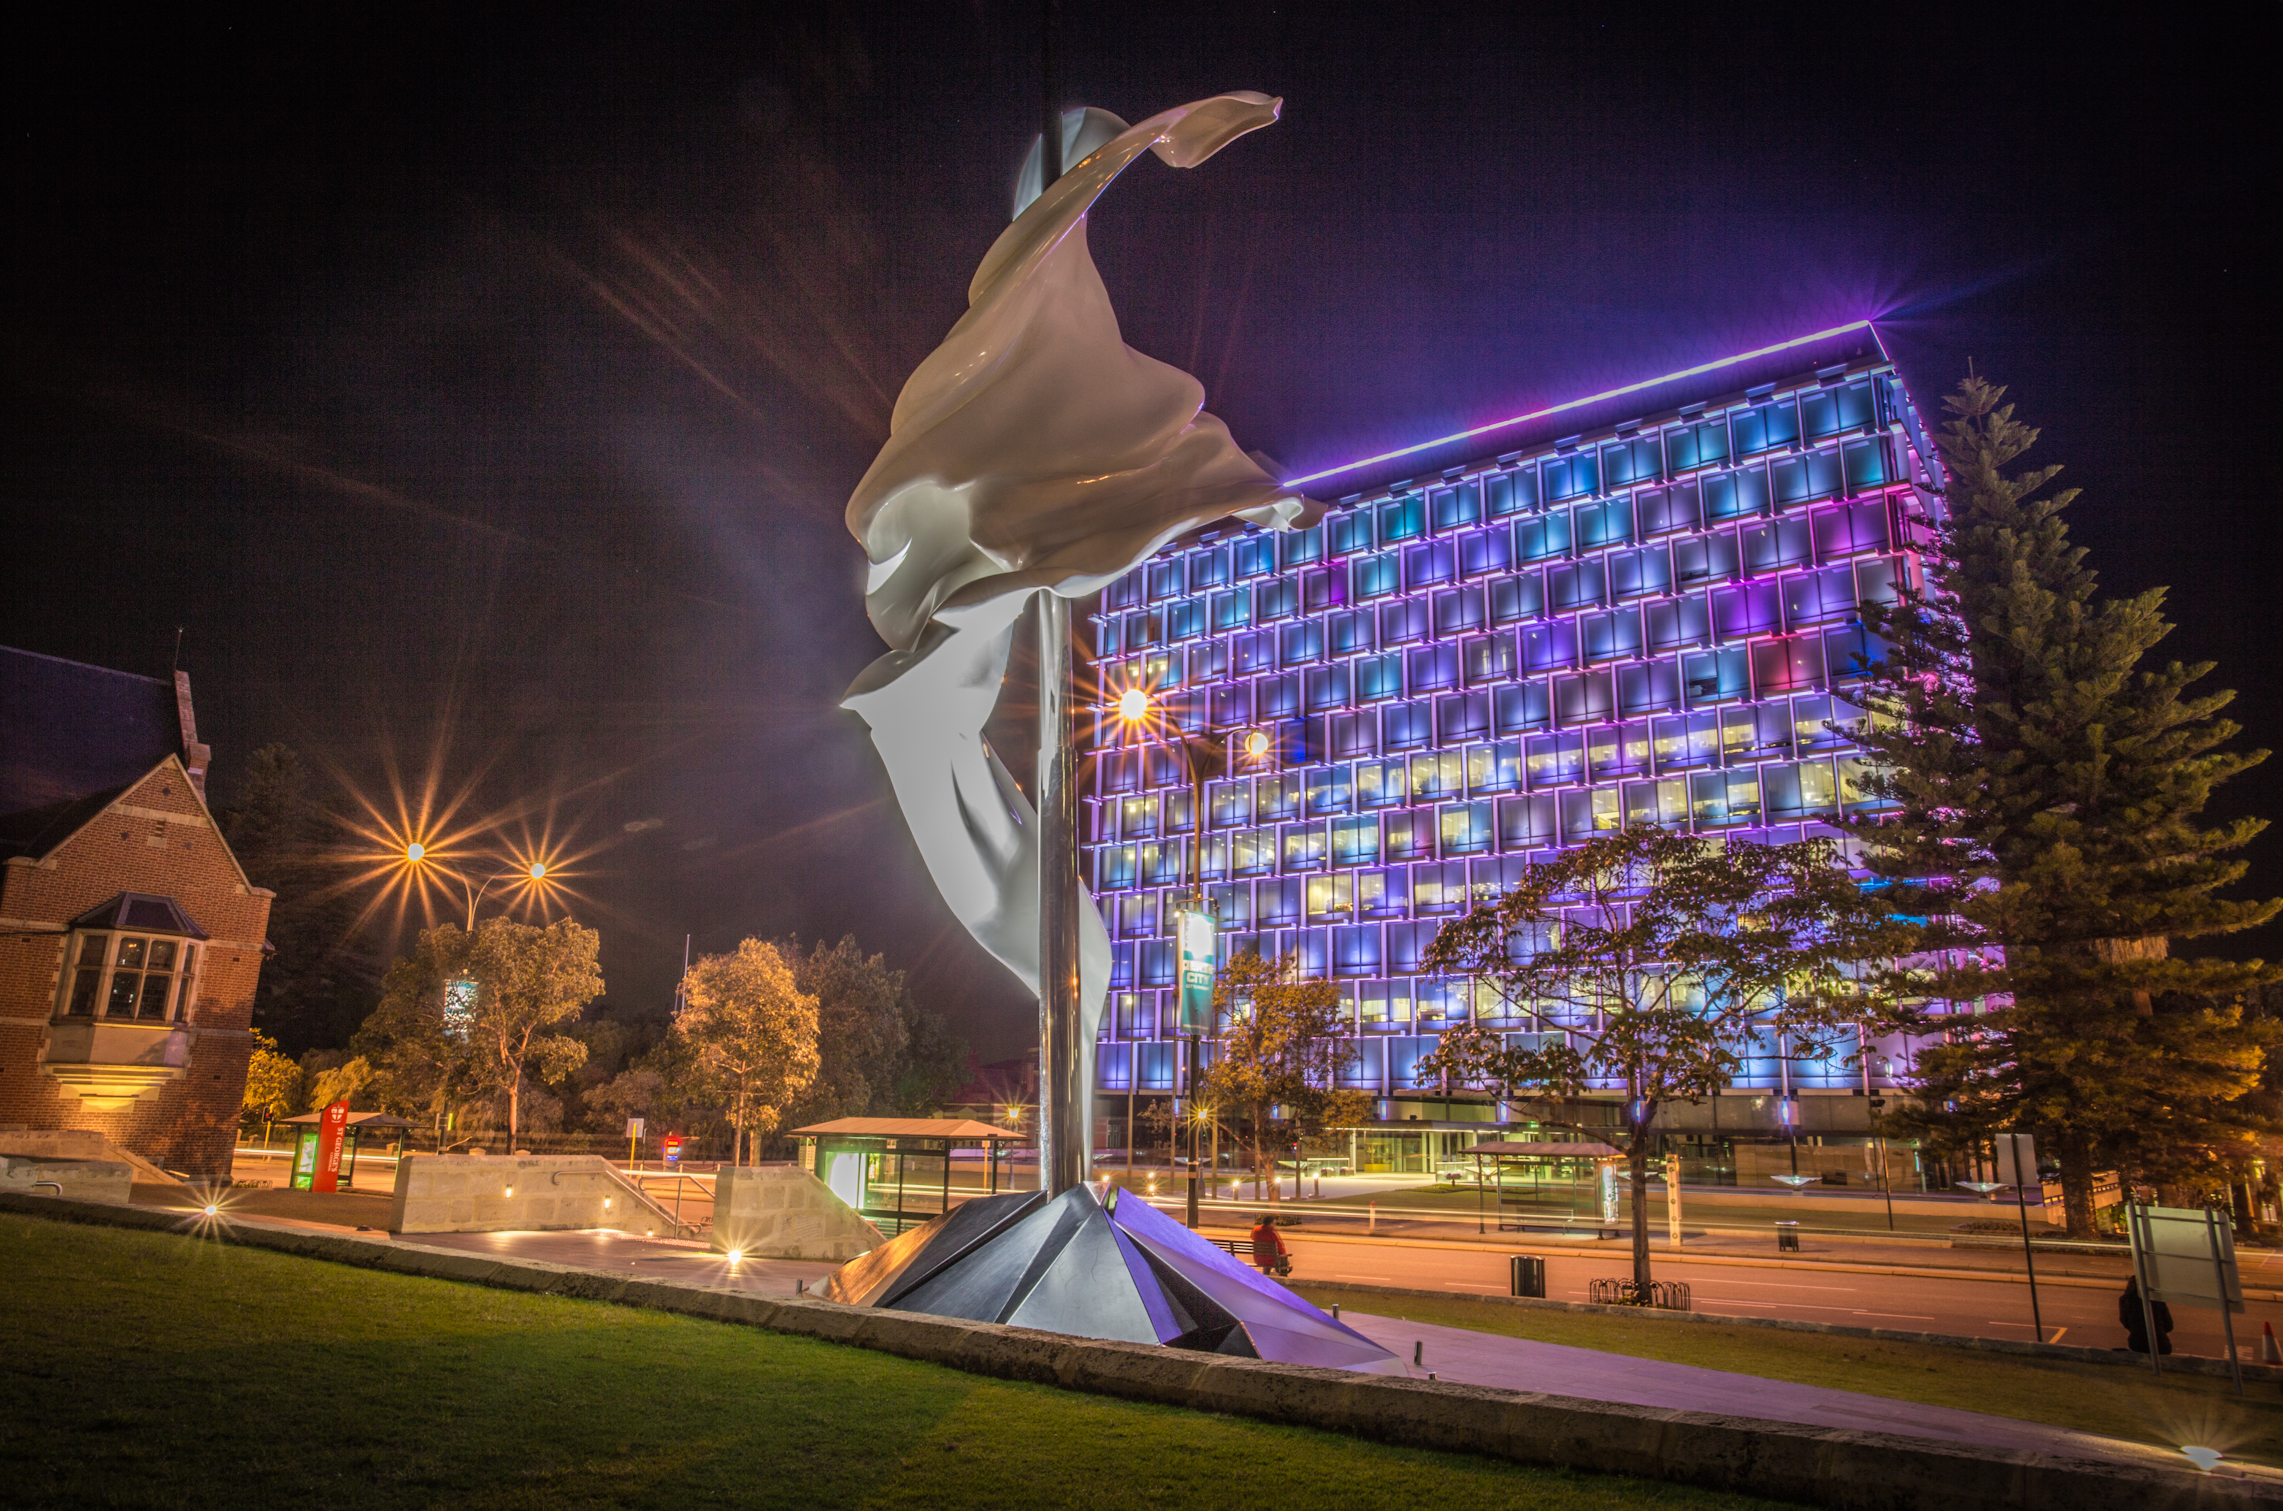 Council house light up at night